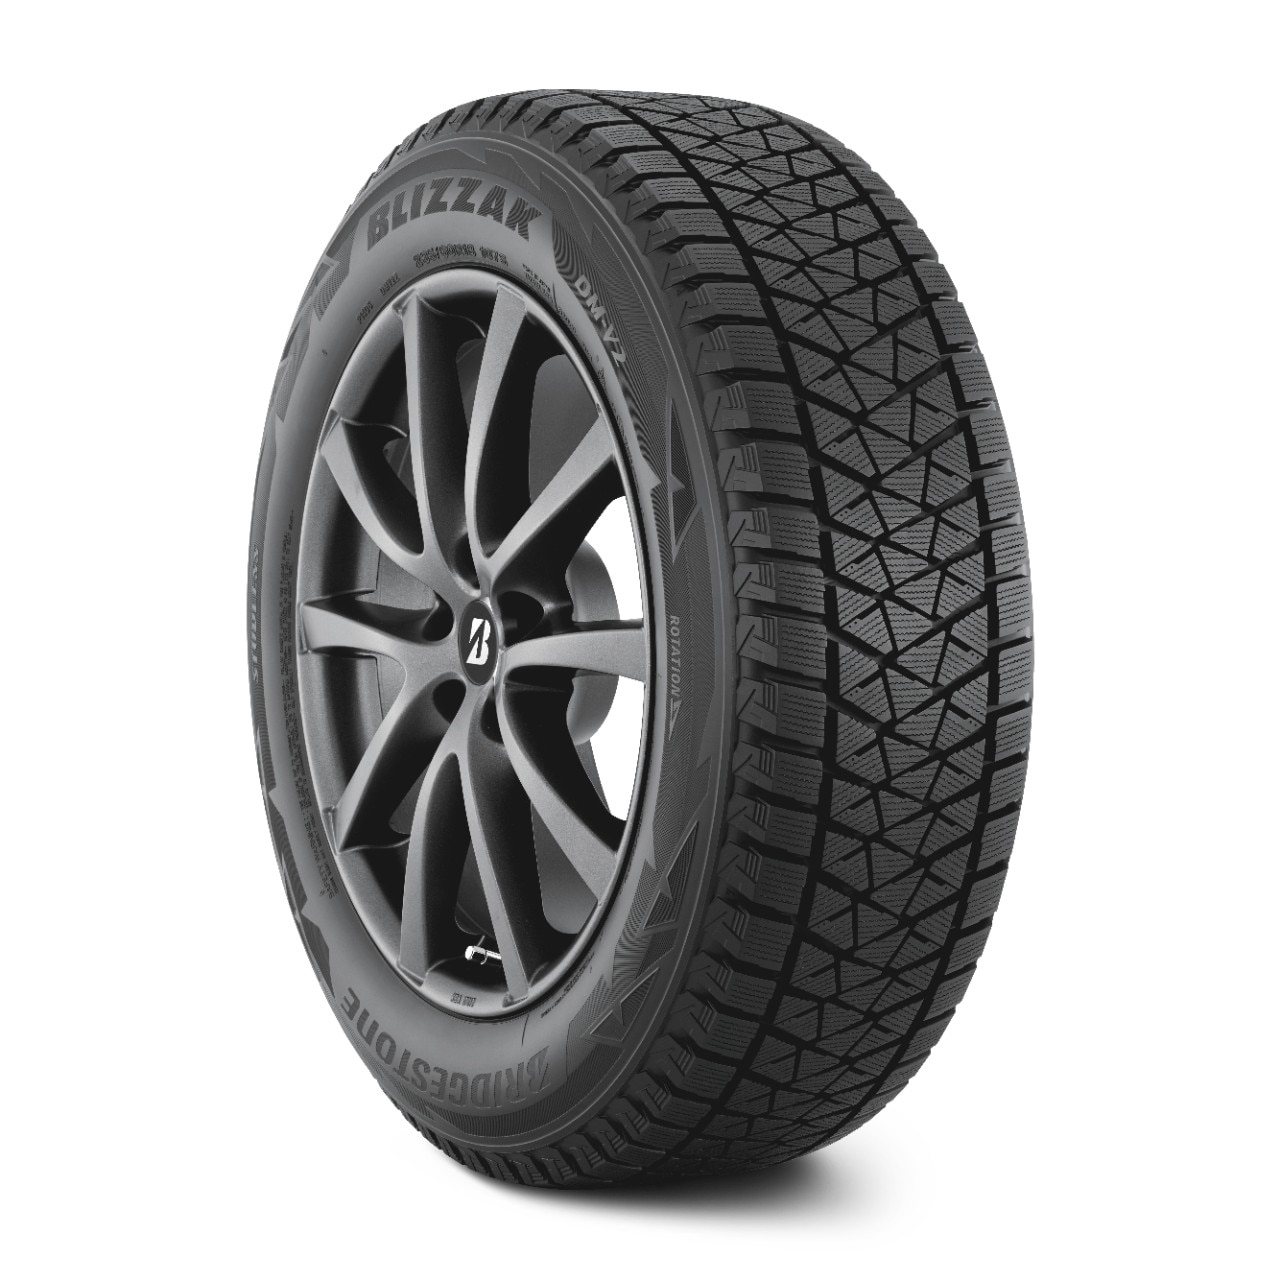 V2: Bridgestone Winter Tires For Snow & Ice